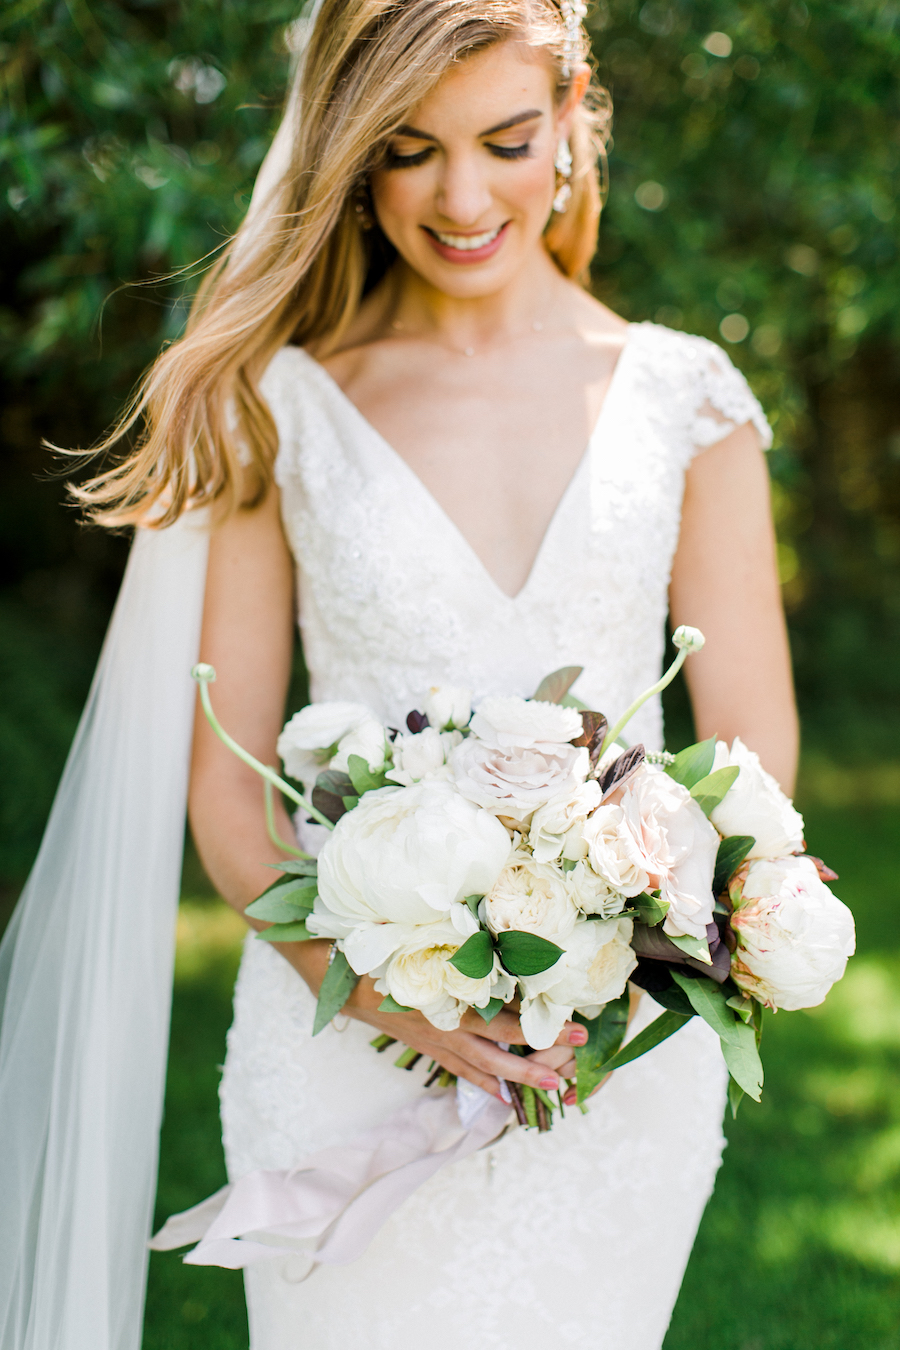 A bride smiling at her bouquet